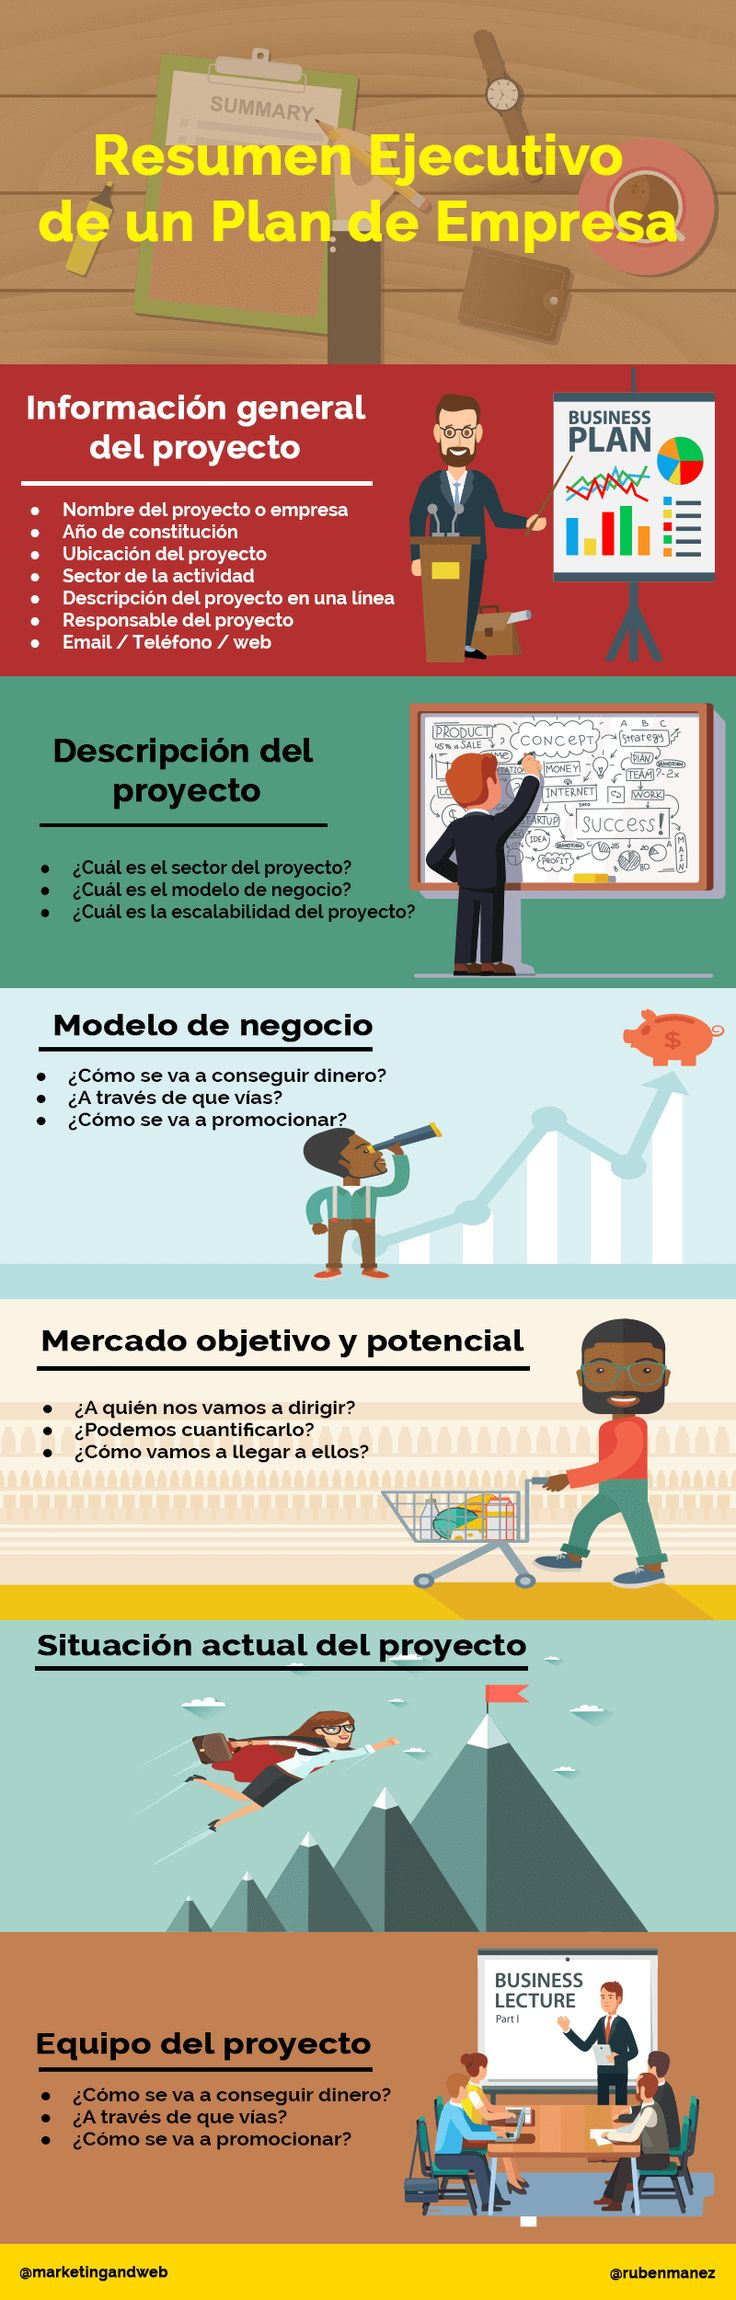 Resumen ejecutivo de un Plan de Empresa #infografia - Learn how I made it to 100K in one months with e-commerce!